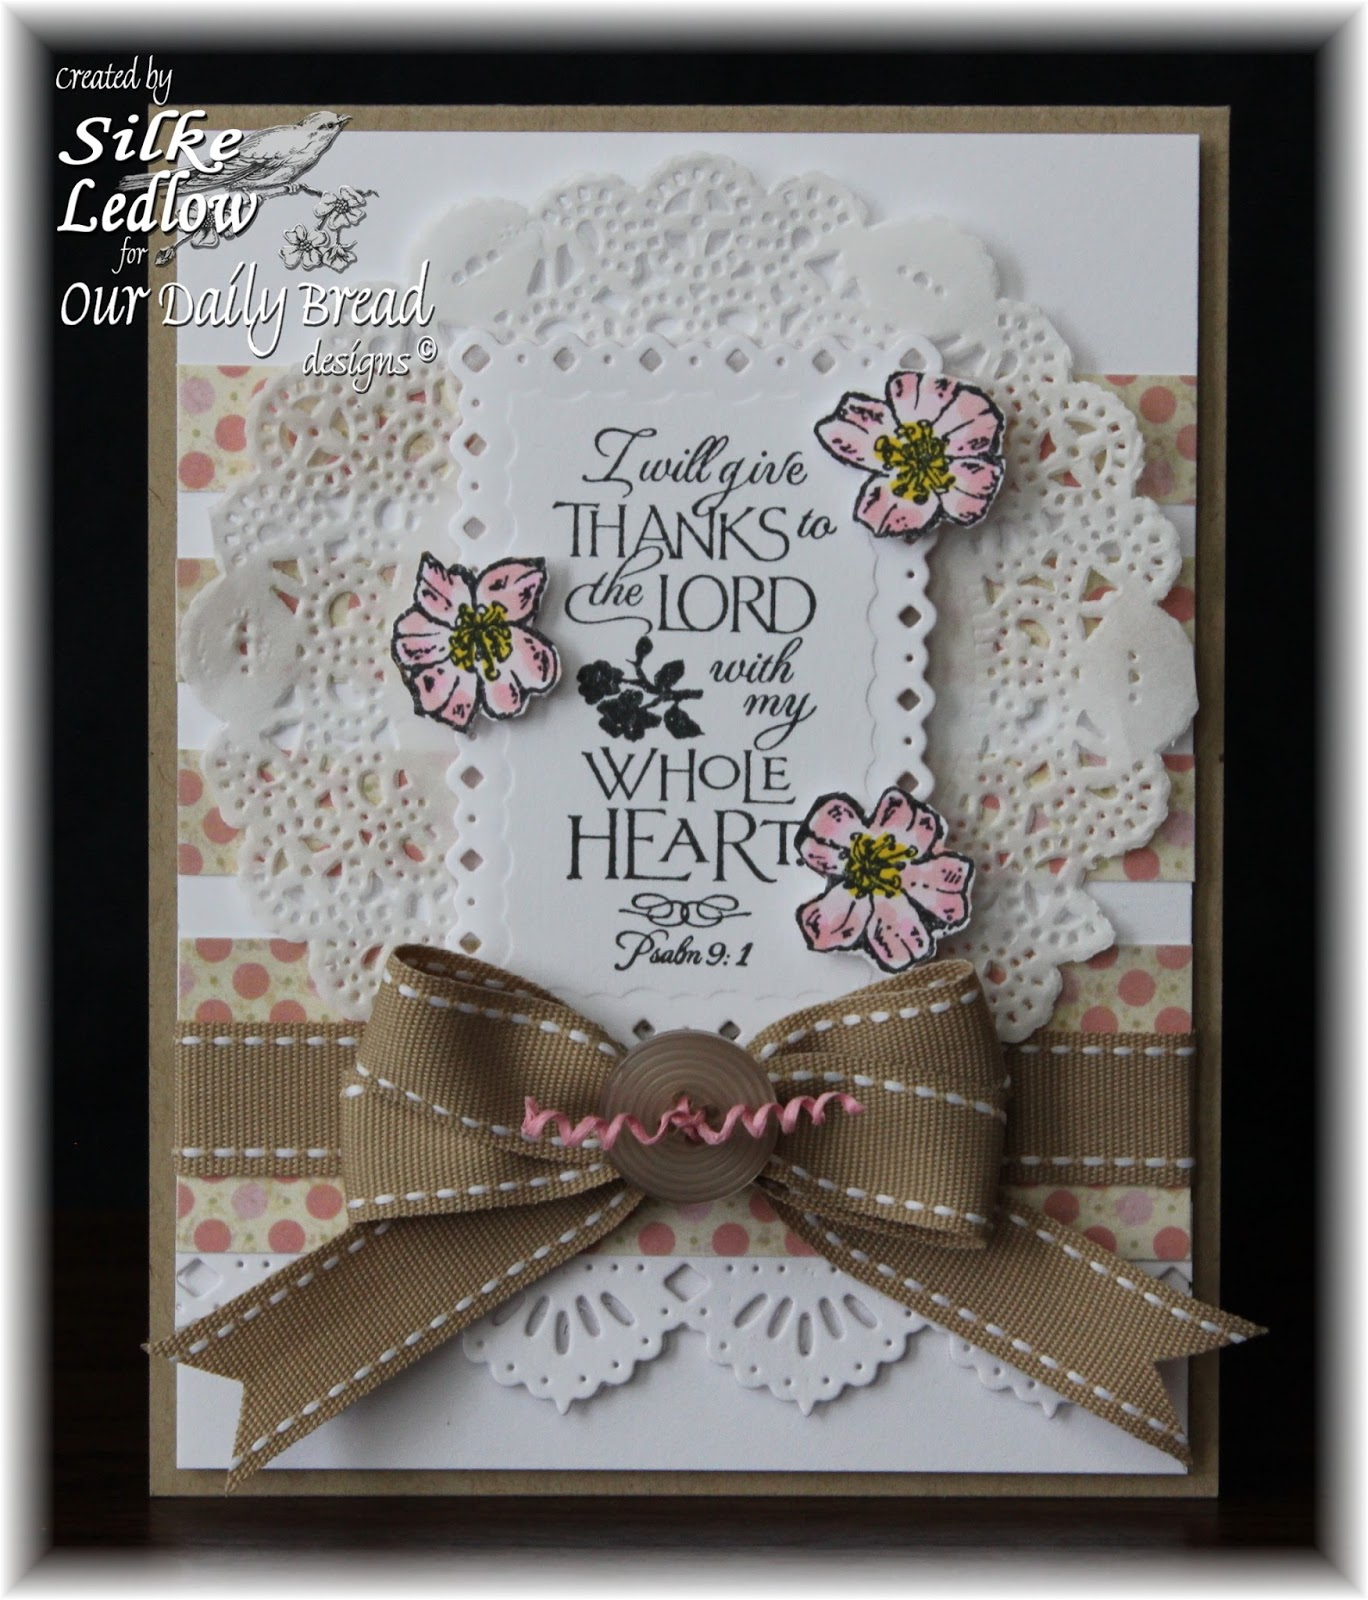 Stamps - Our Daily Bread Designs Cherry Blossom, ODBD Blushing Rose Paper Collection, ODBD Custom Beautiful Borders Die